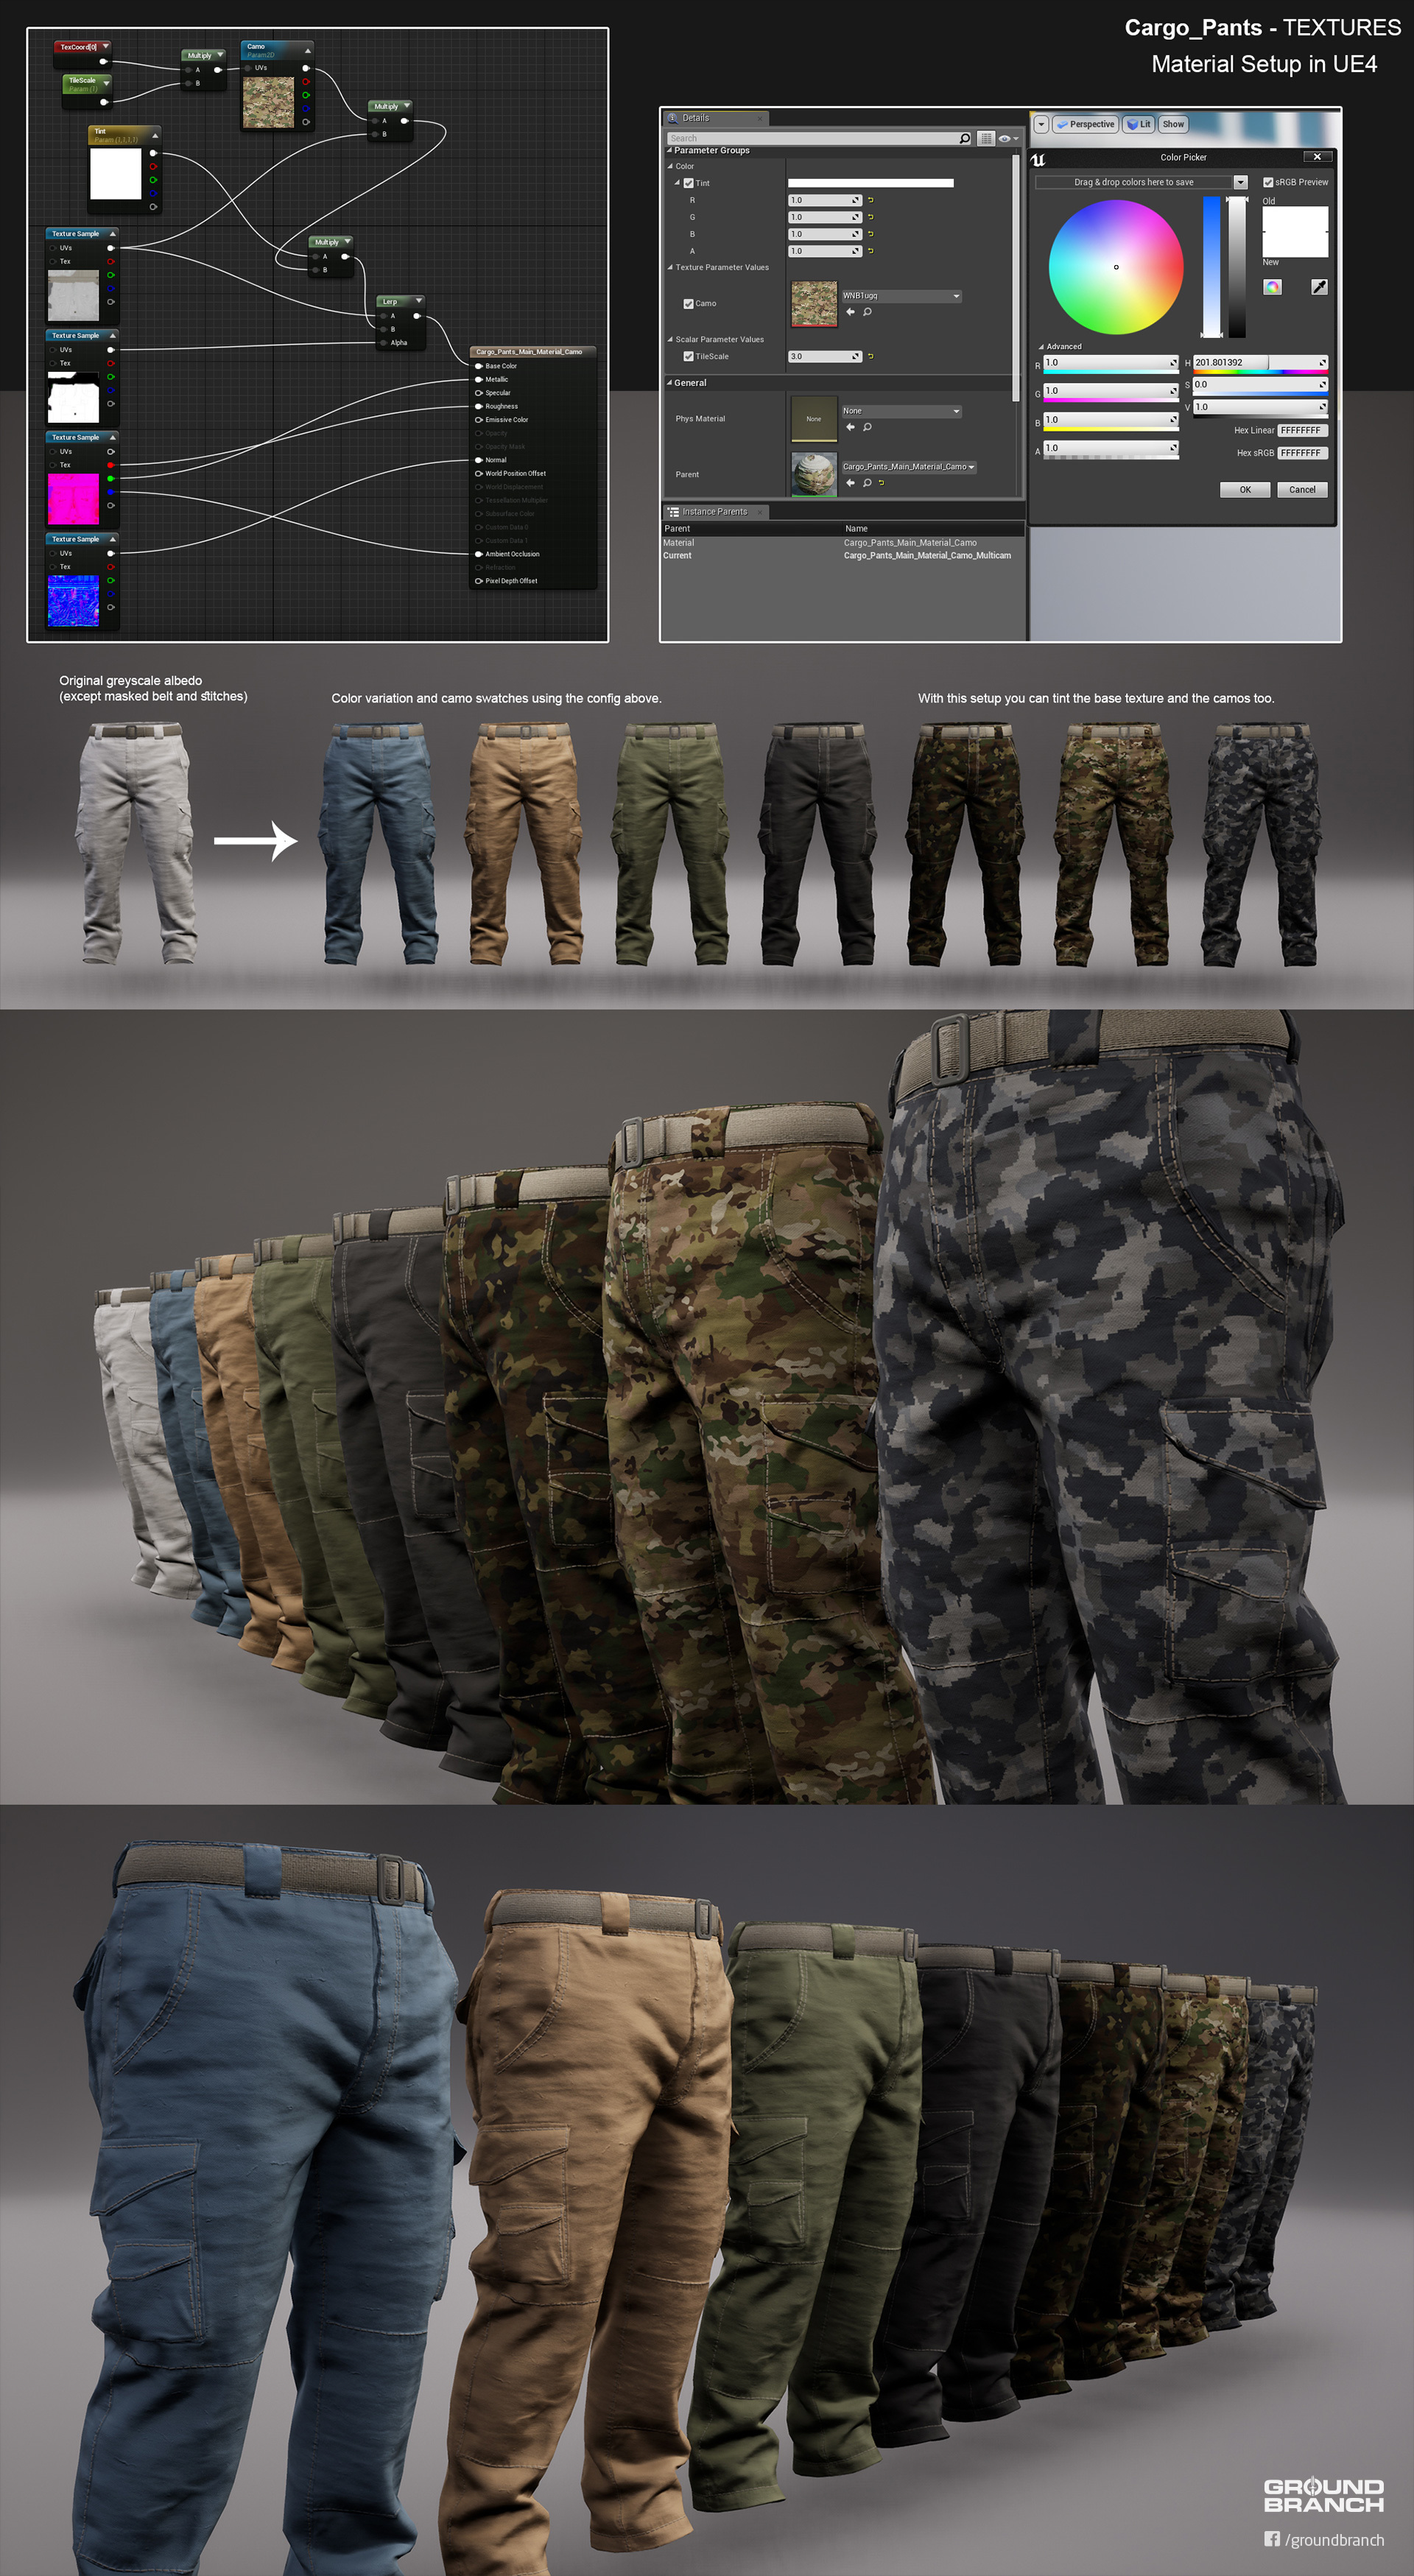 cc8c54dae4 These skins aren't final (don't worry, we'll have most of these and more);  point is, we're going be able to make the colors/patterns whatever we want  (and ...